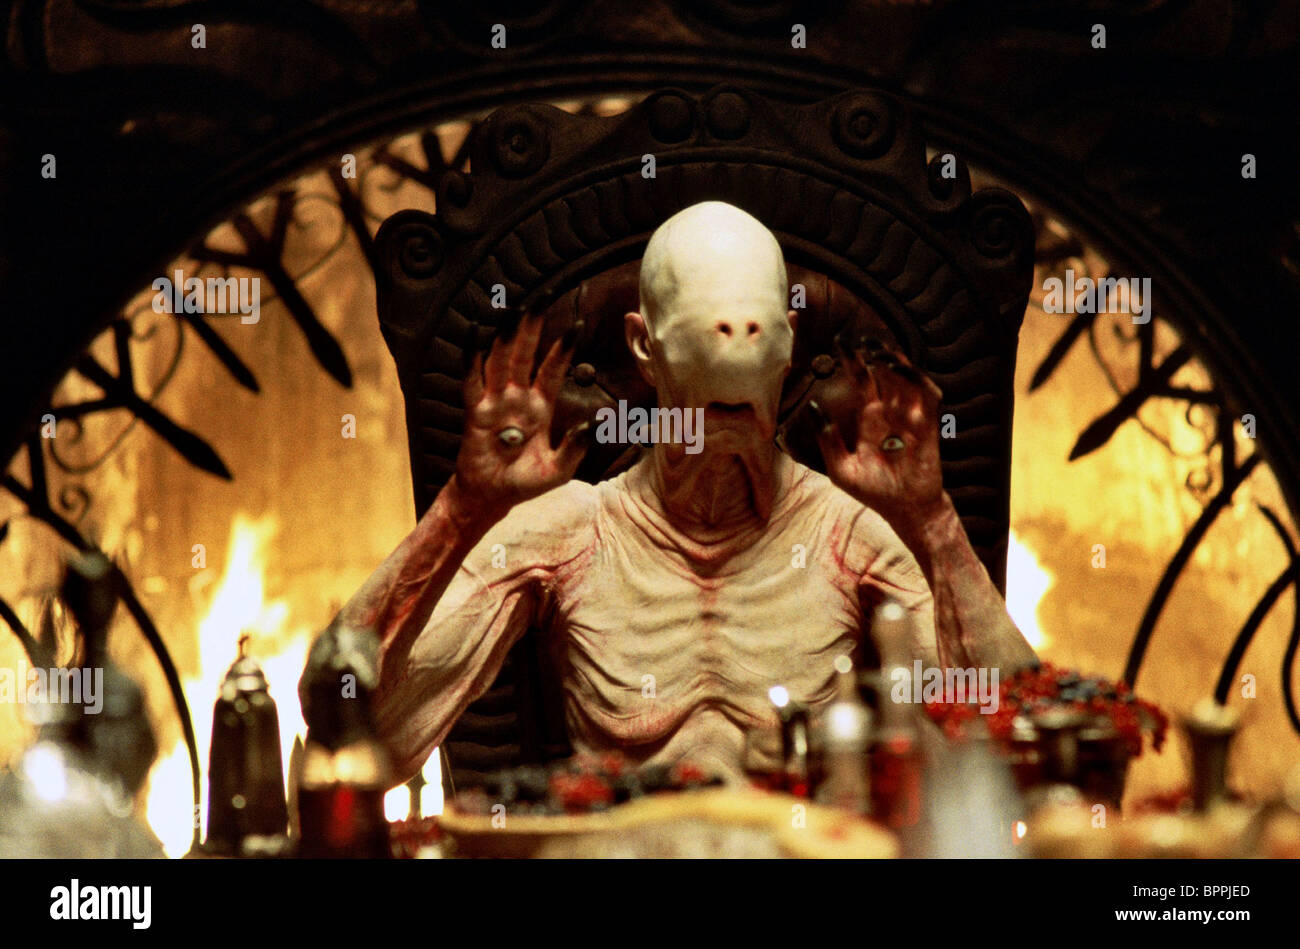 THE PALE MAN PAN'S LABYRINTH; EL LABERINTO DEL FAUNO (2006 ...